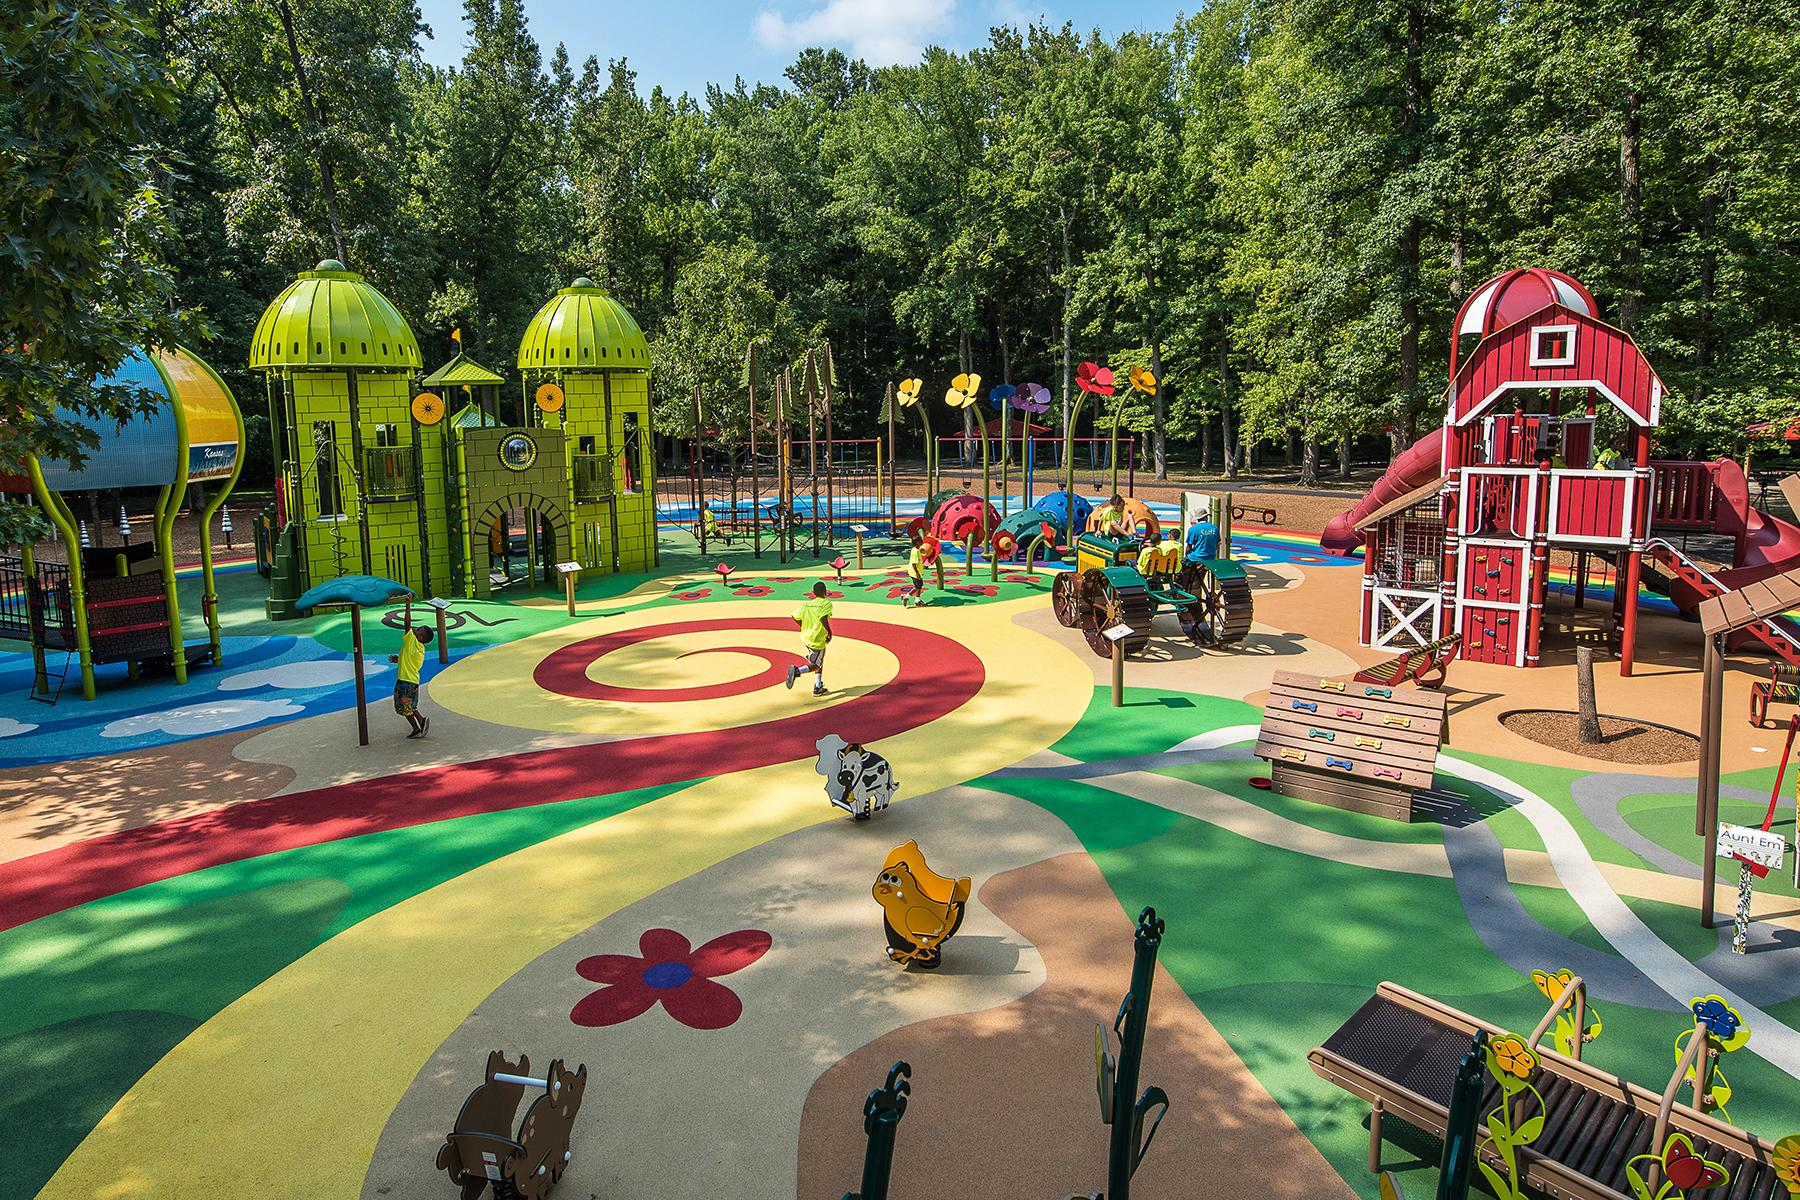 Top 5 Unique Playgrounds - WanderGlobe